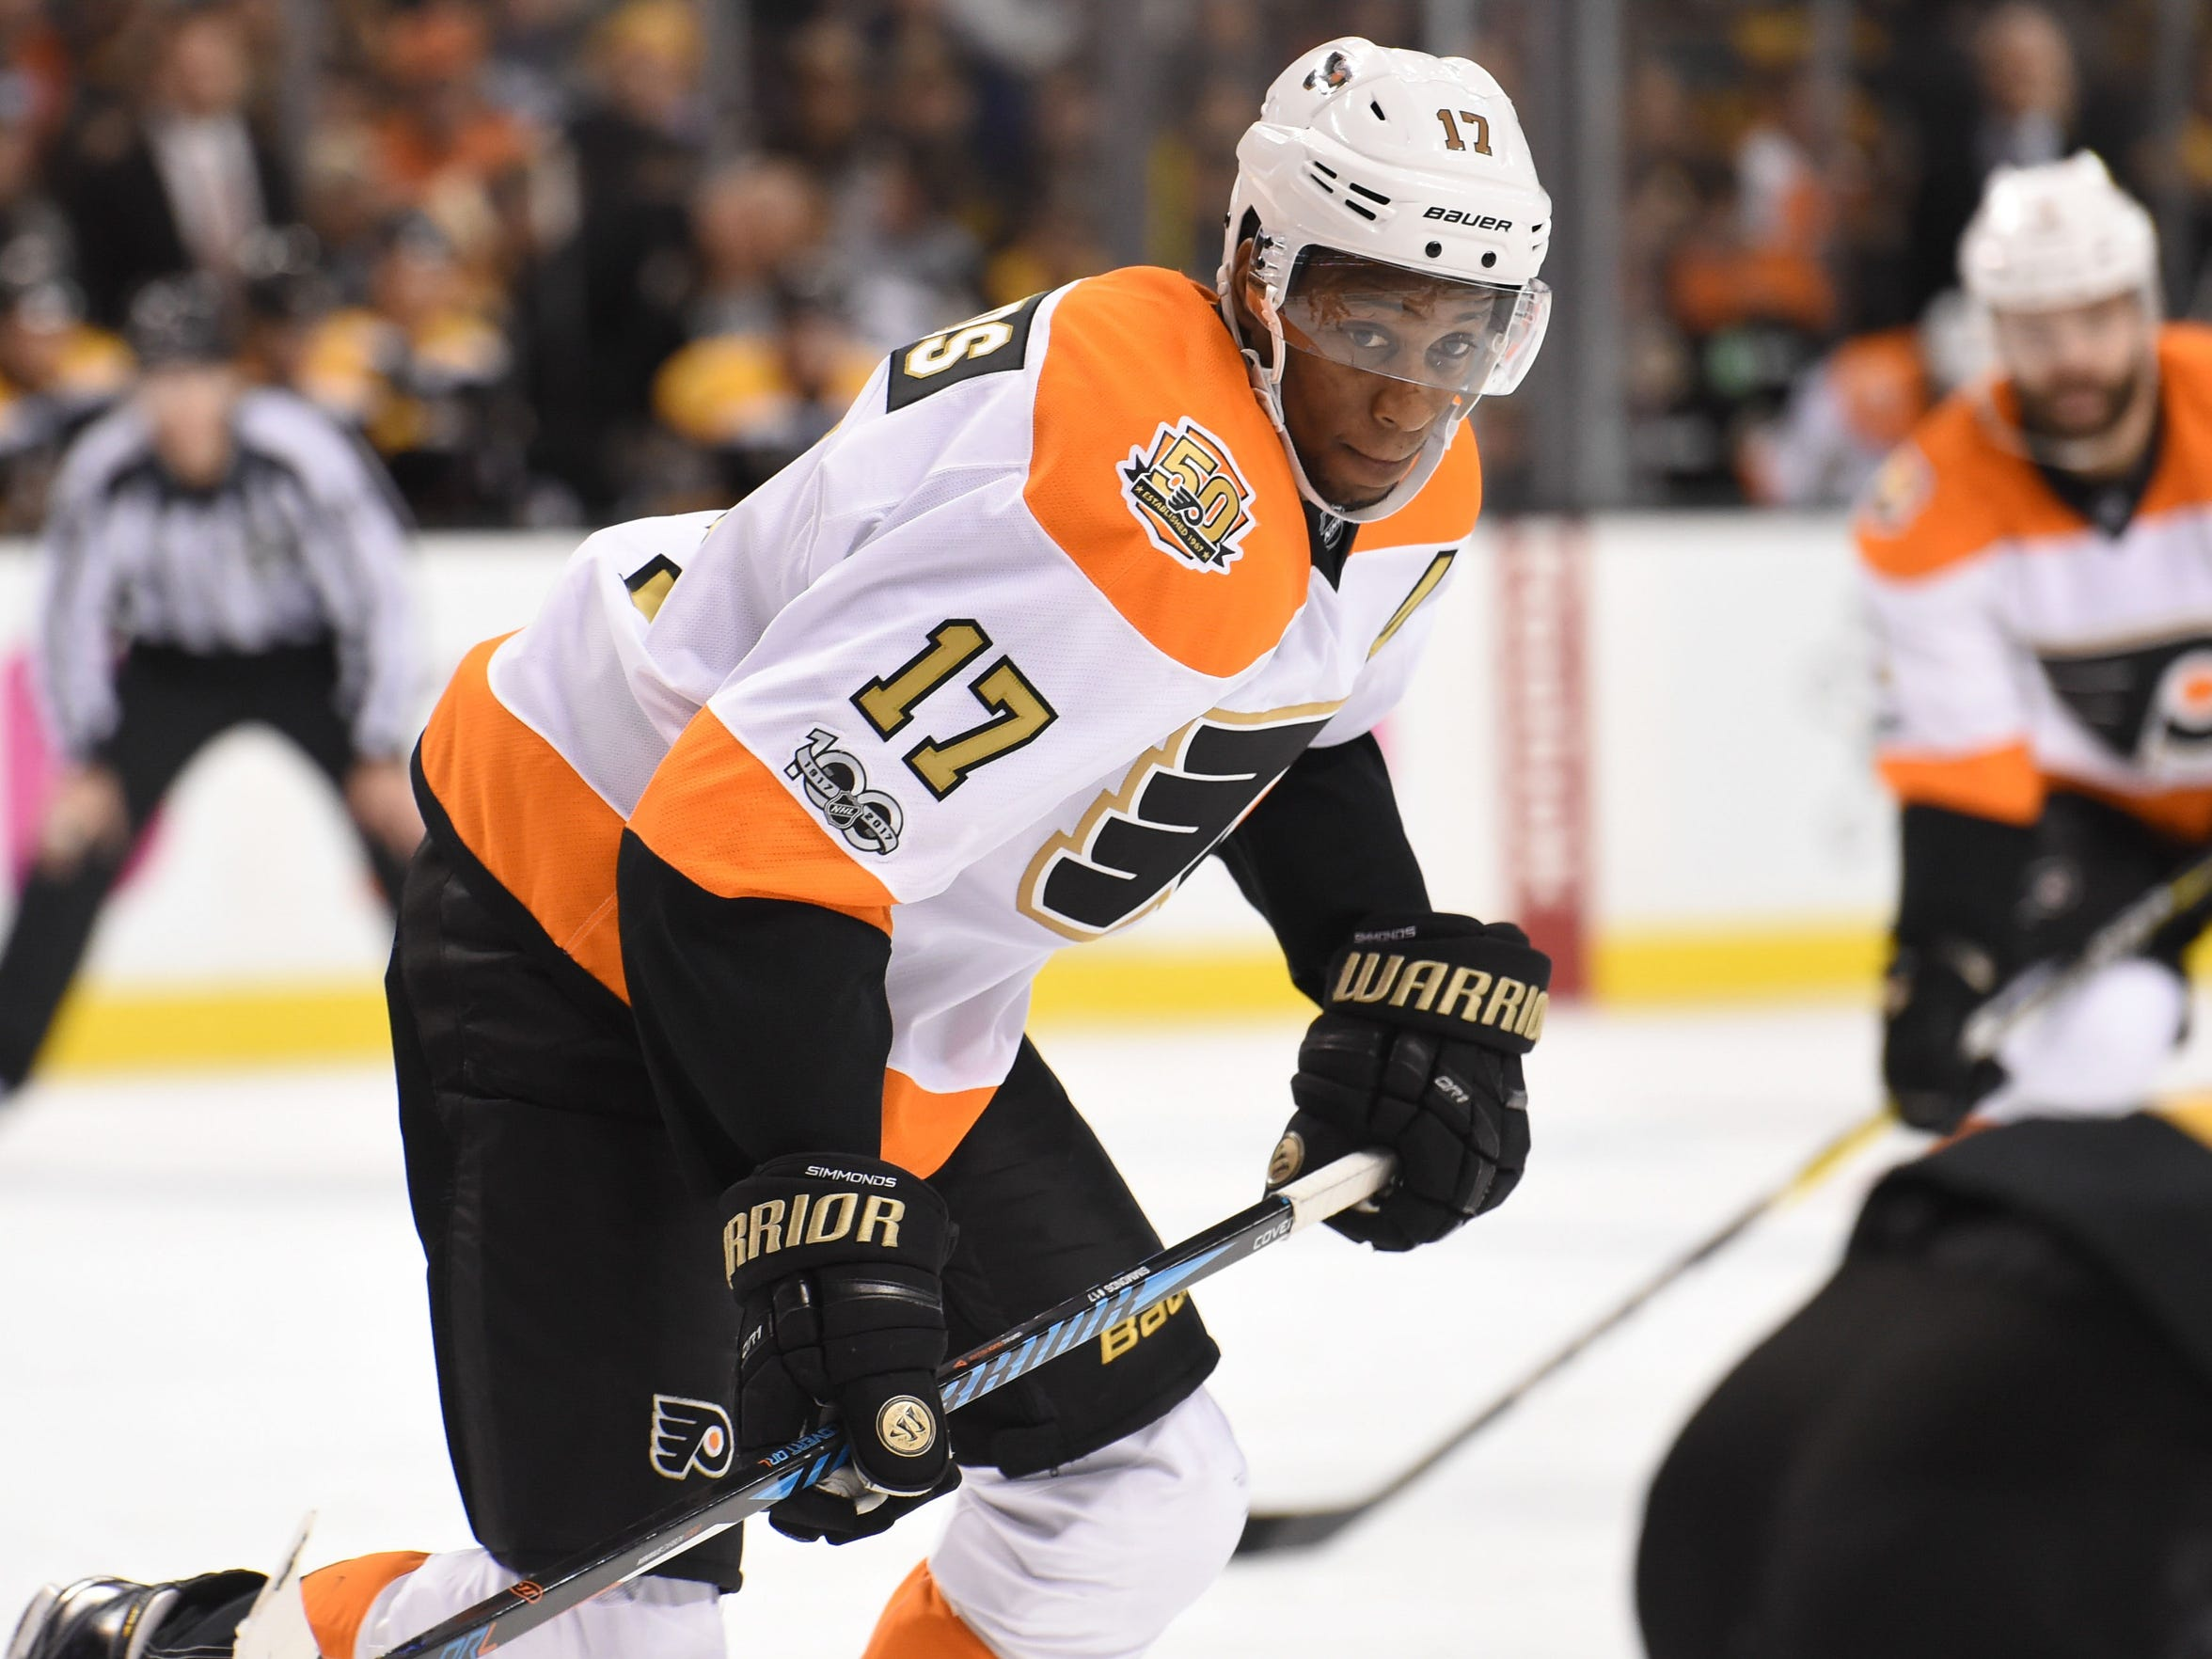 Wayne Simmonds' 21 goals leads the Flyers by a margin of six.